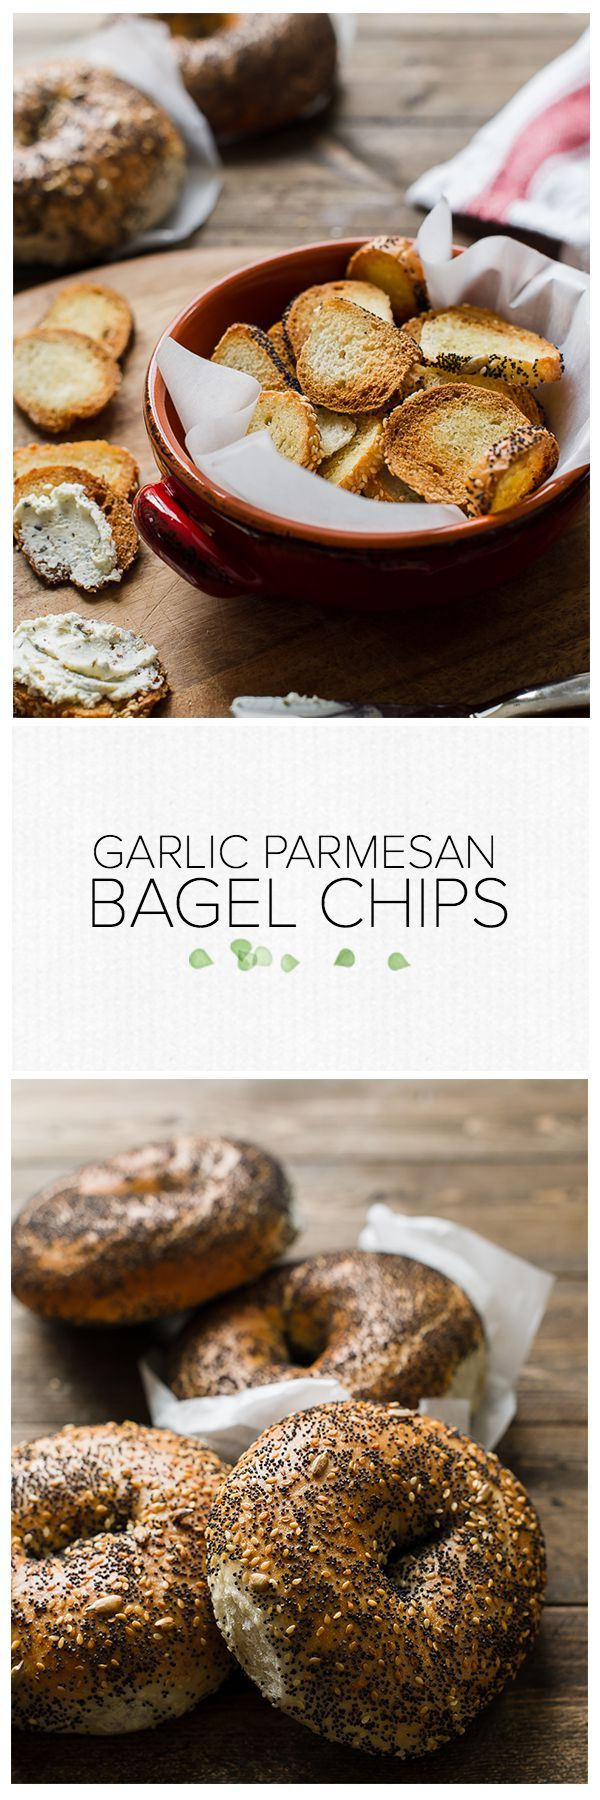 Garlic Parmesan Bagel Chips | www.kitchenconfidante.com  Extra bagels? A little stale, maybe? Transform them into your favorite crunchy snack!